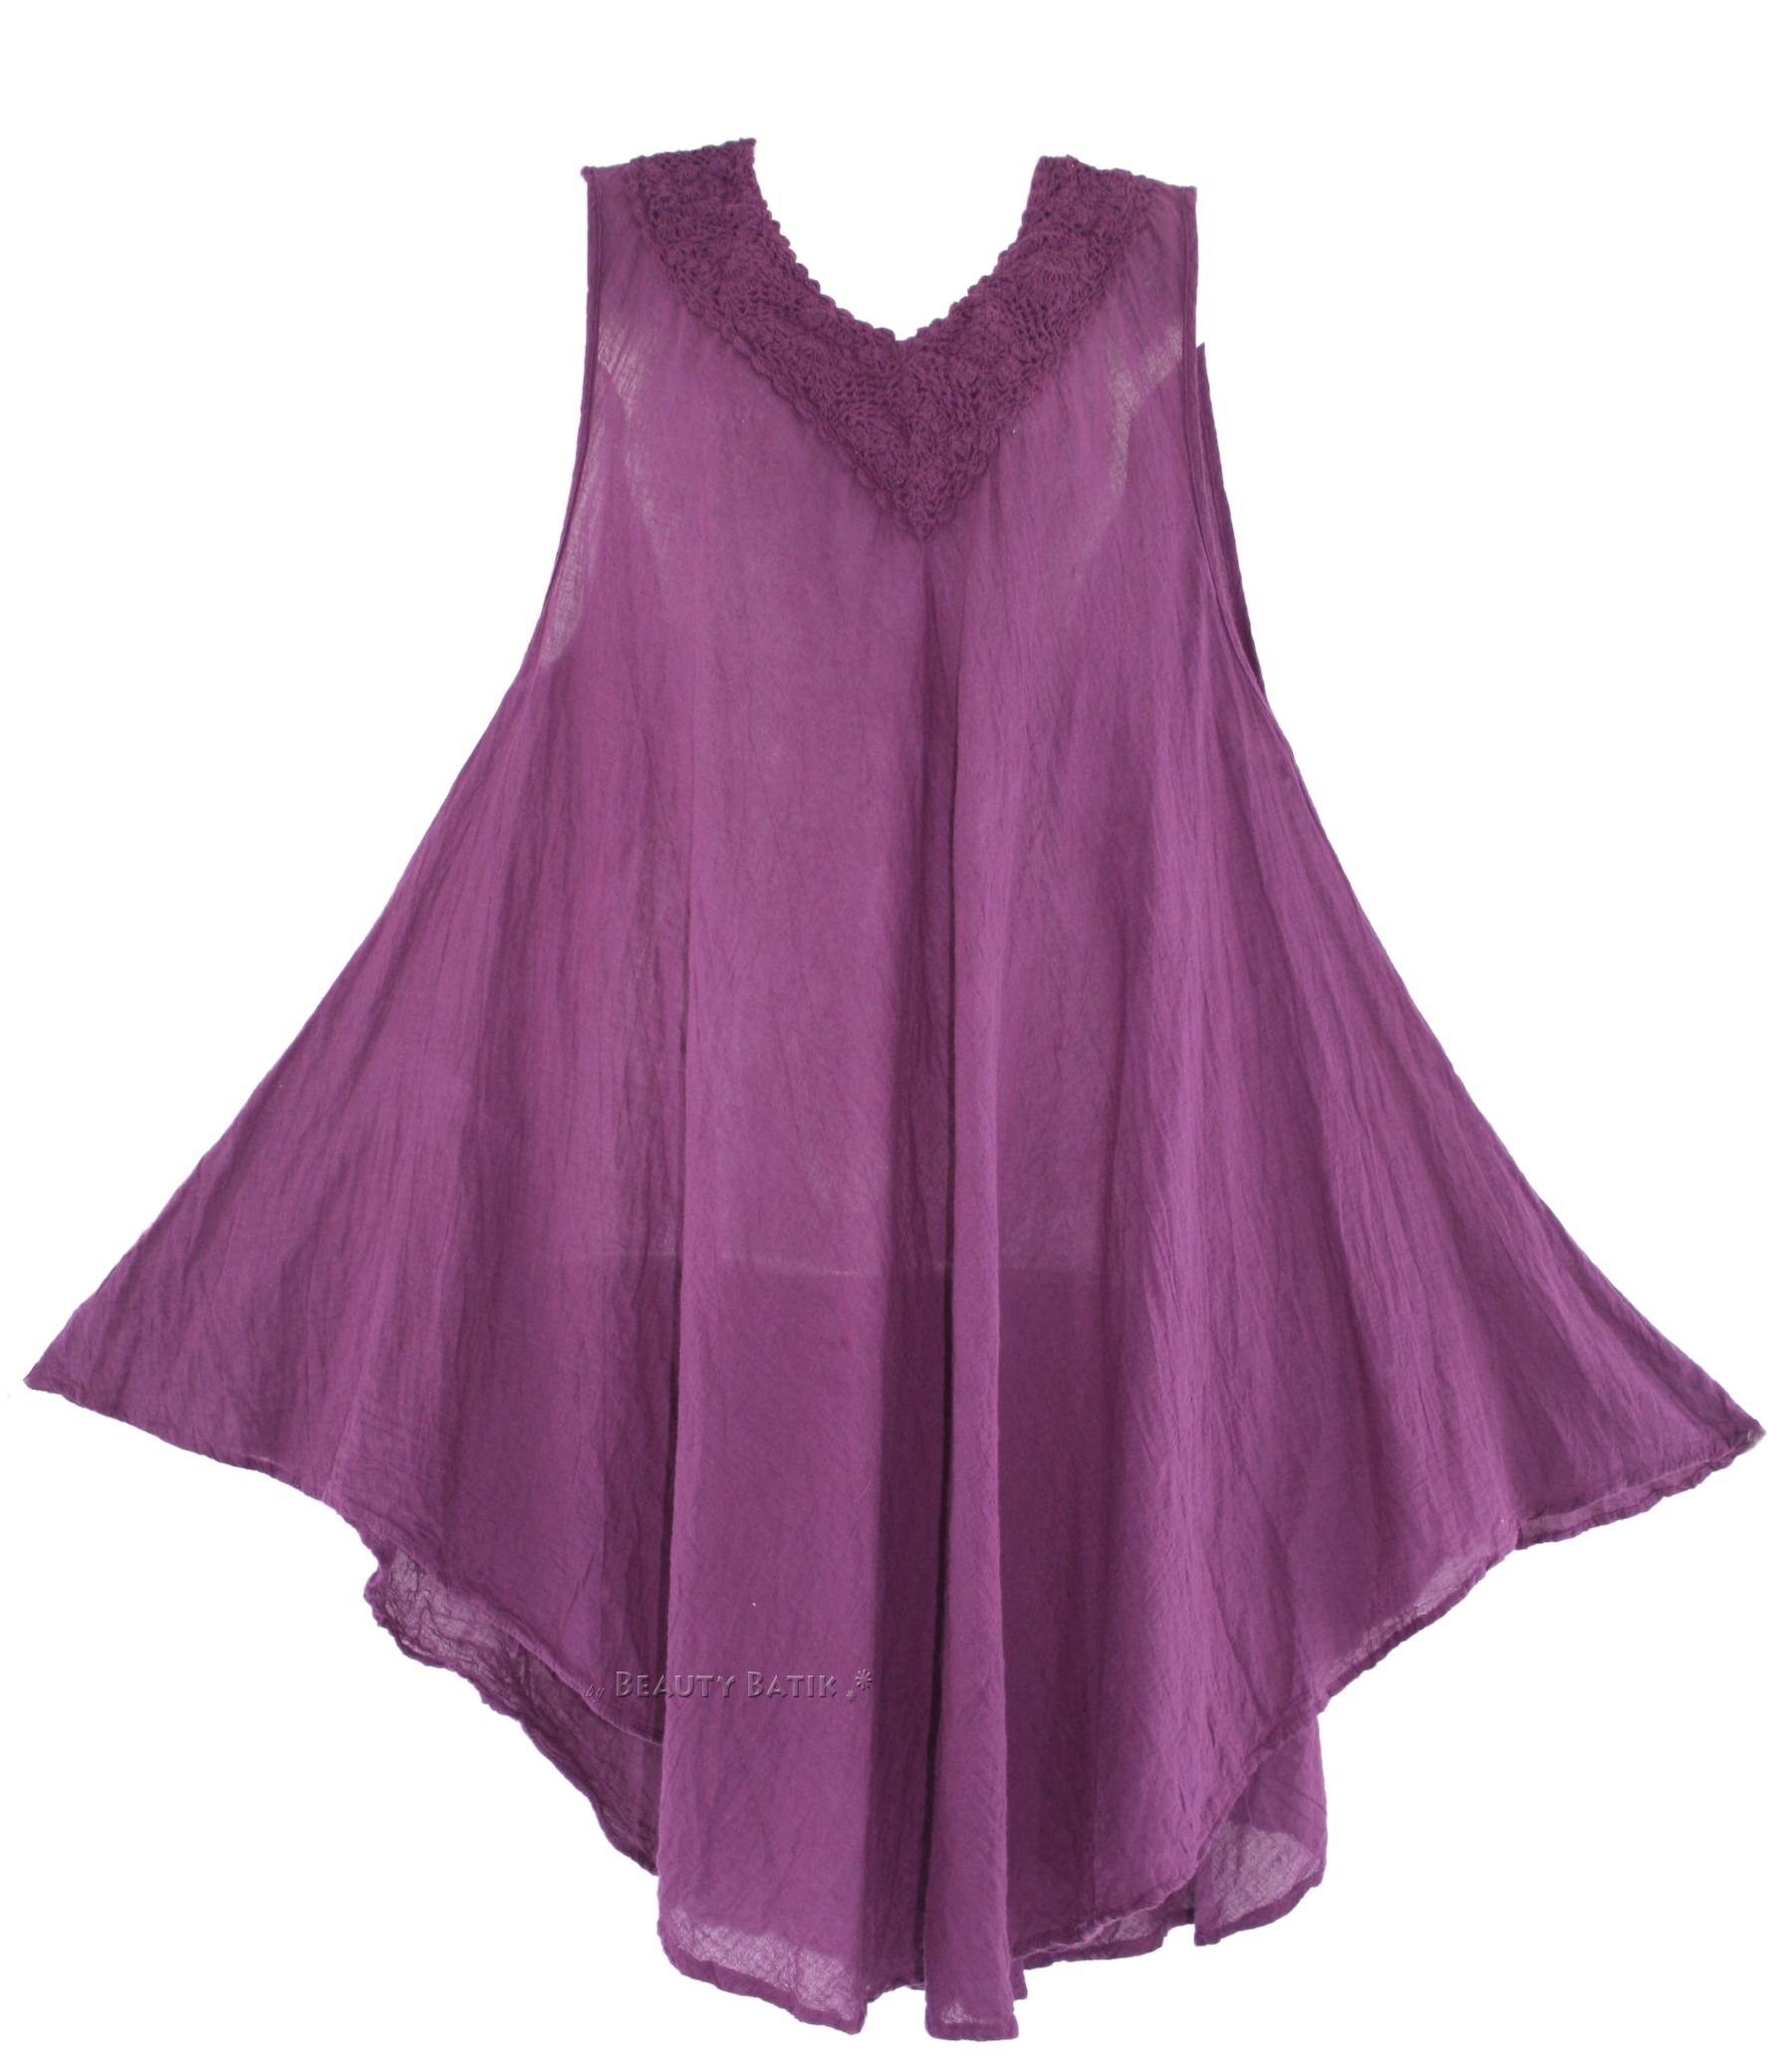 Tunic Plus Size Tops. Tunic length tops are particularly useful for busy ladies who can't afford to waste any time in front of their closet thinking what they should wear. 20/22 22/24 24/26 Price Update Rating & .